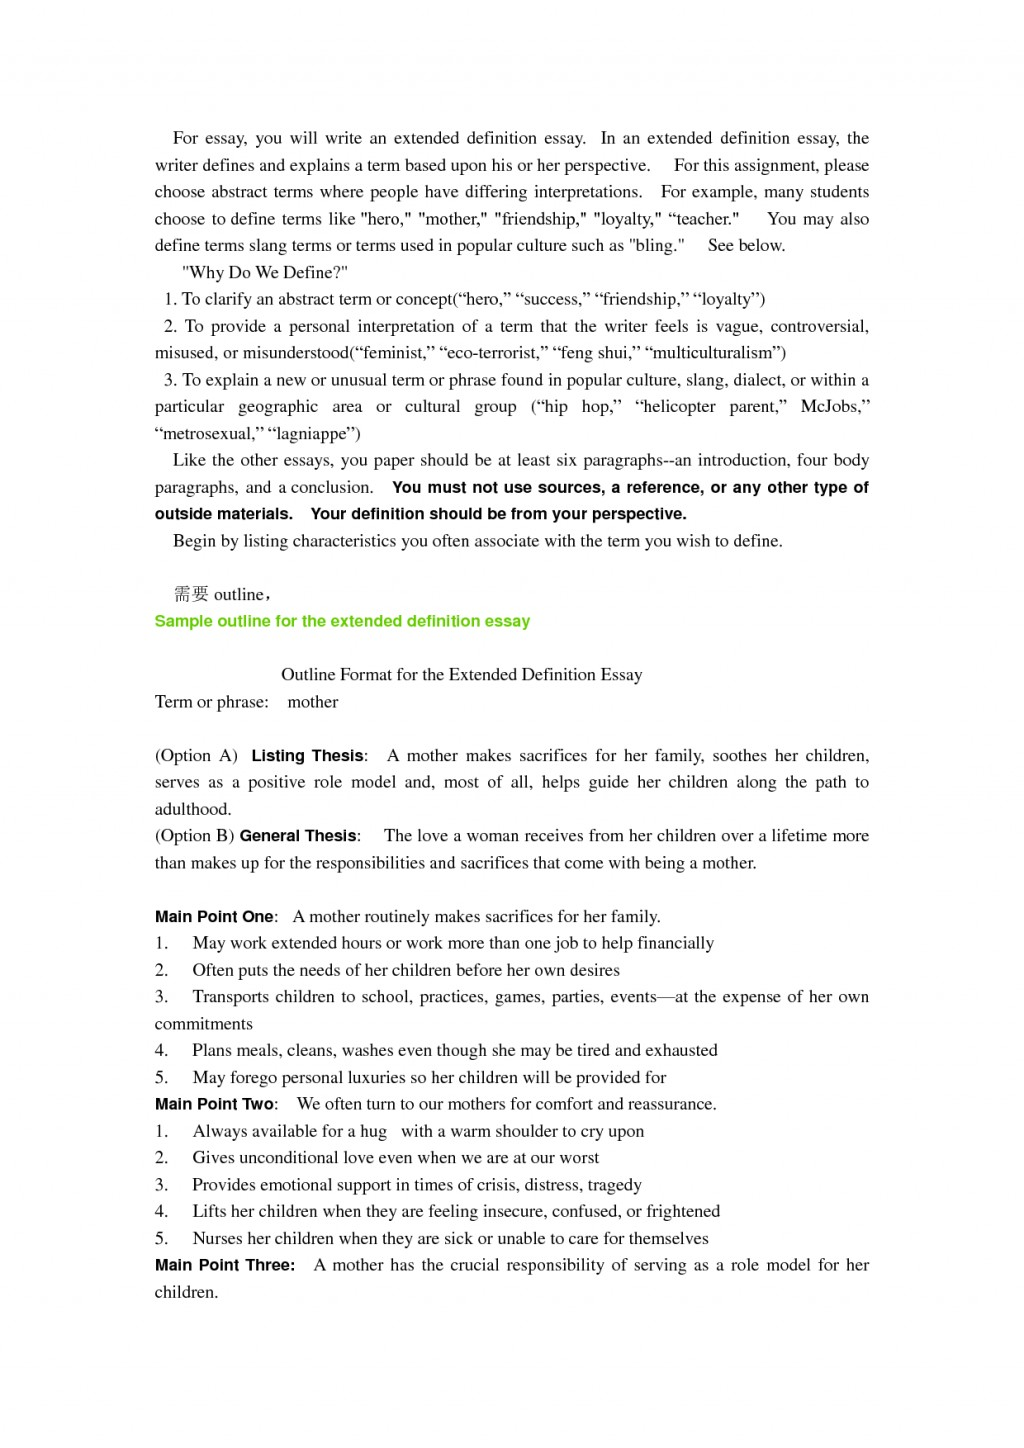 018 G5v3mngunh Essay Example Definition Unique Outline Writing Pdf Hero Success Large